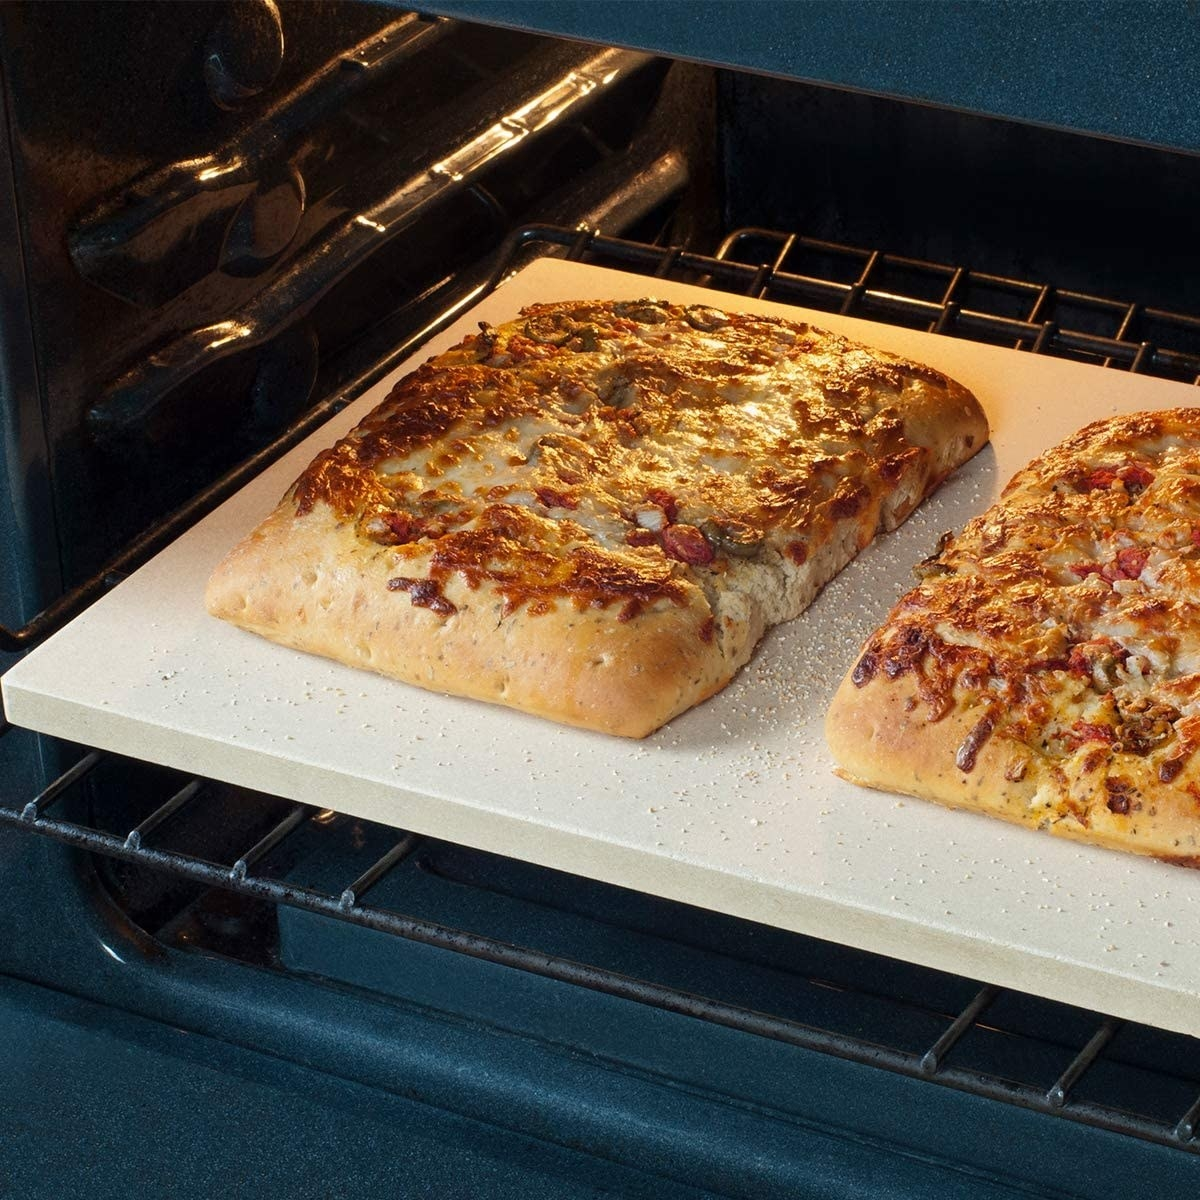 Two rectangular pizzas cooking on a pizza stone.